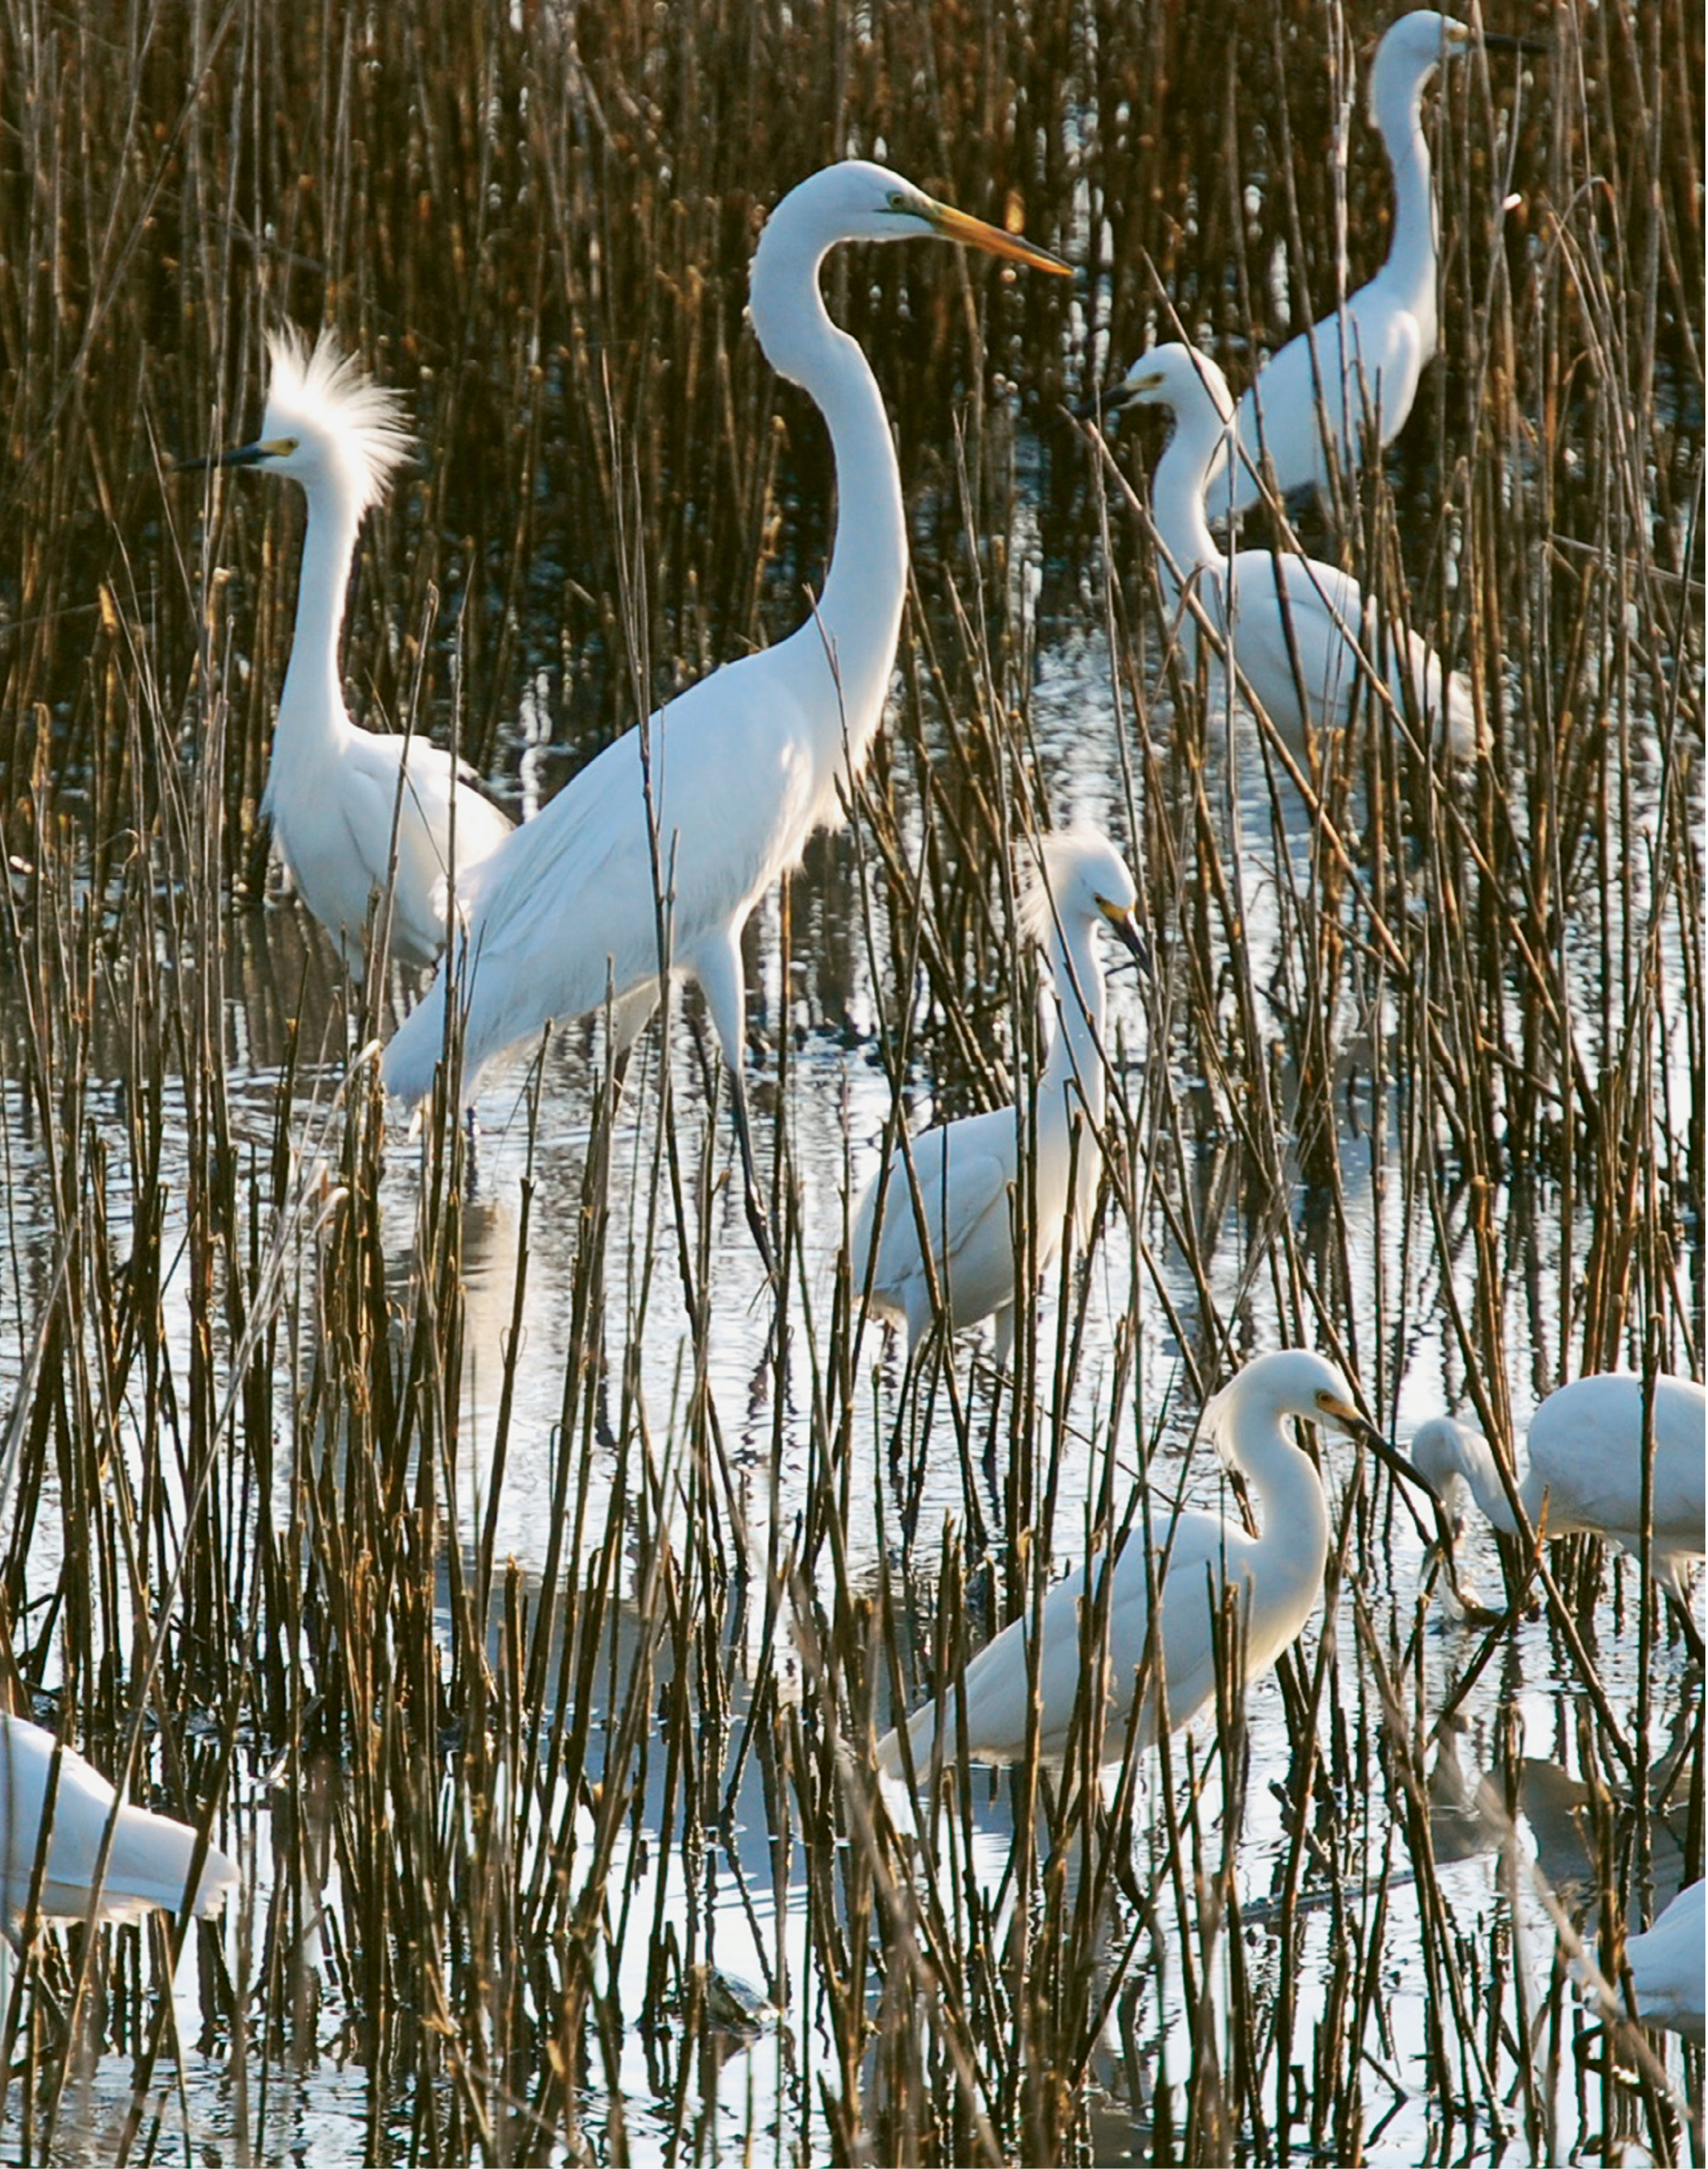 Breakfast Meeting by Hilarie Lambert  {Amateur category} - Hungry egrets in the marsh near the James Island Yacht Club